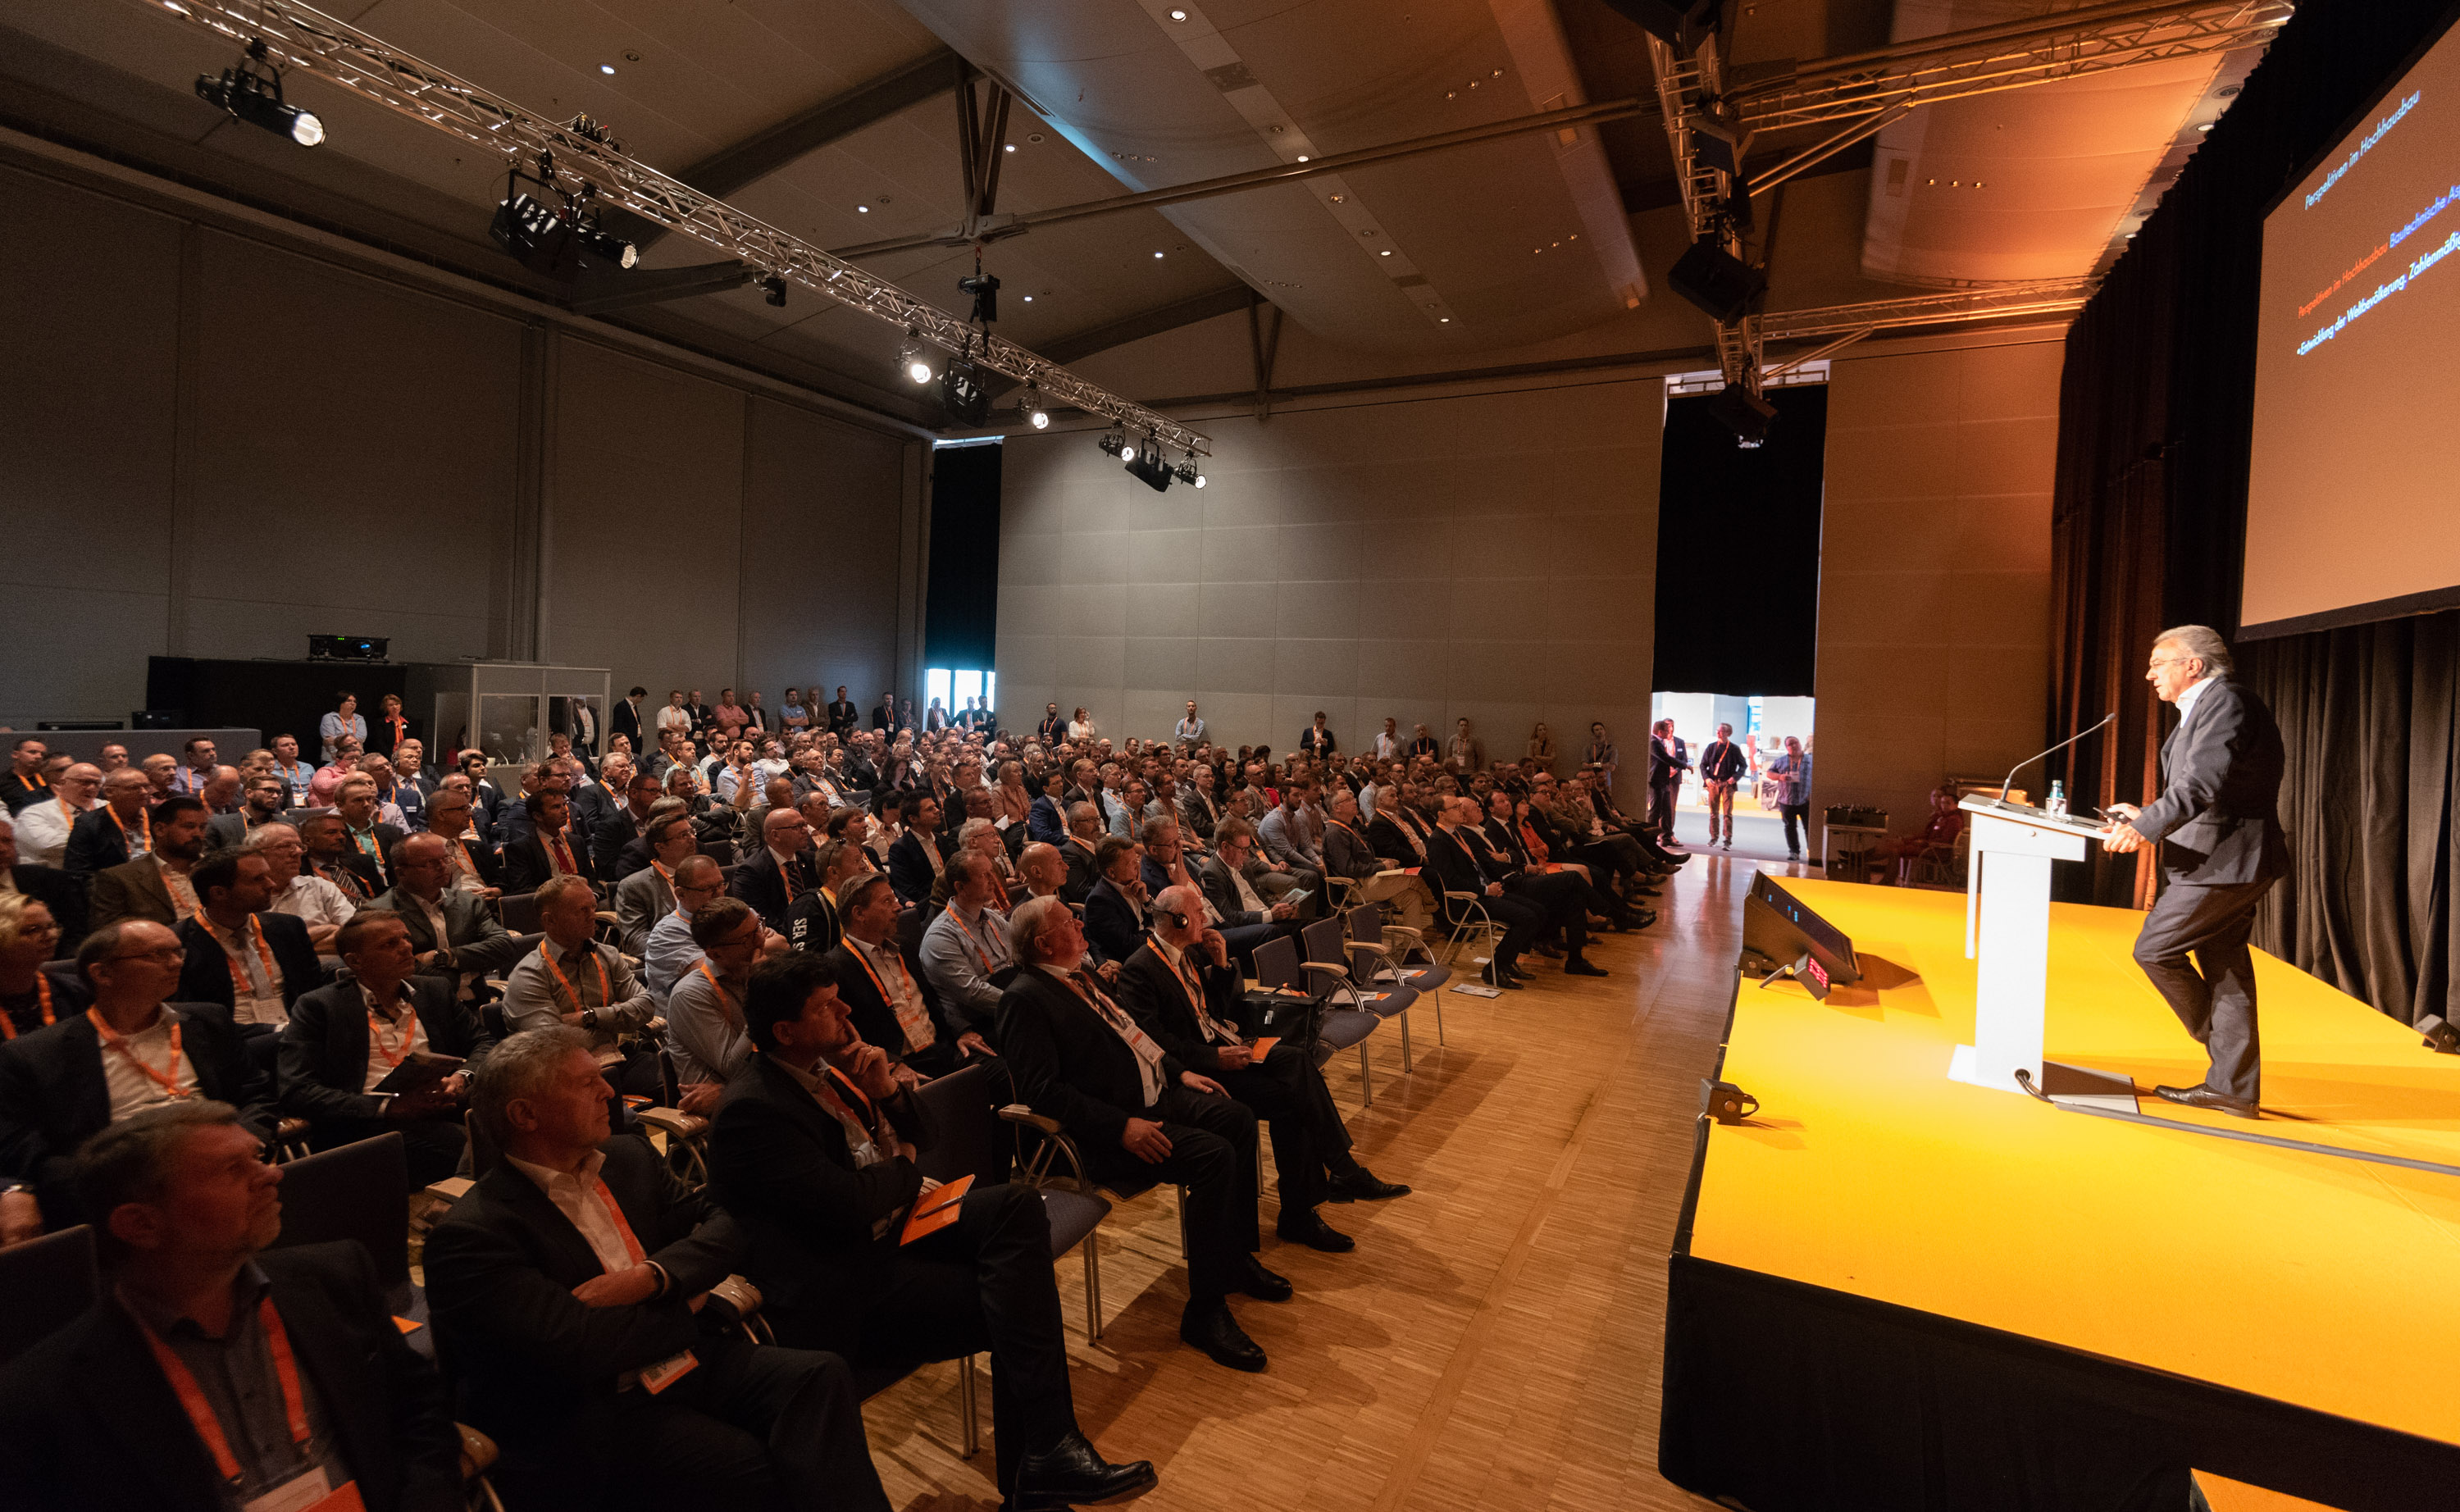 E2 Forum Frankfurt 2018: Forum of innovations, stimuli and contacts  for 420 experts of vertical-horizontal mobility in the buildings of  tomorrow. (Source: Messe Frankfurt GmbH / Sandra Gätke)